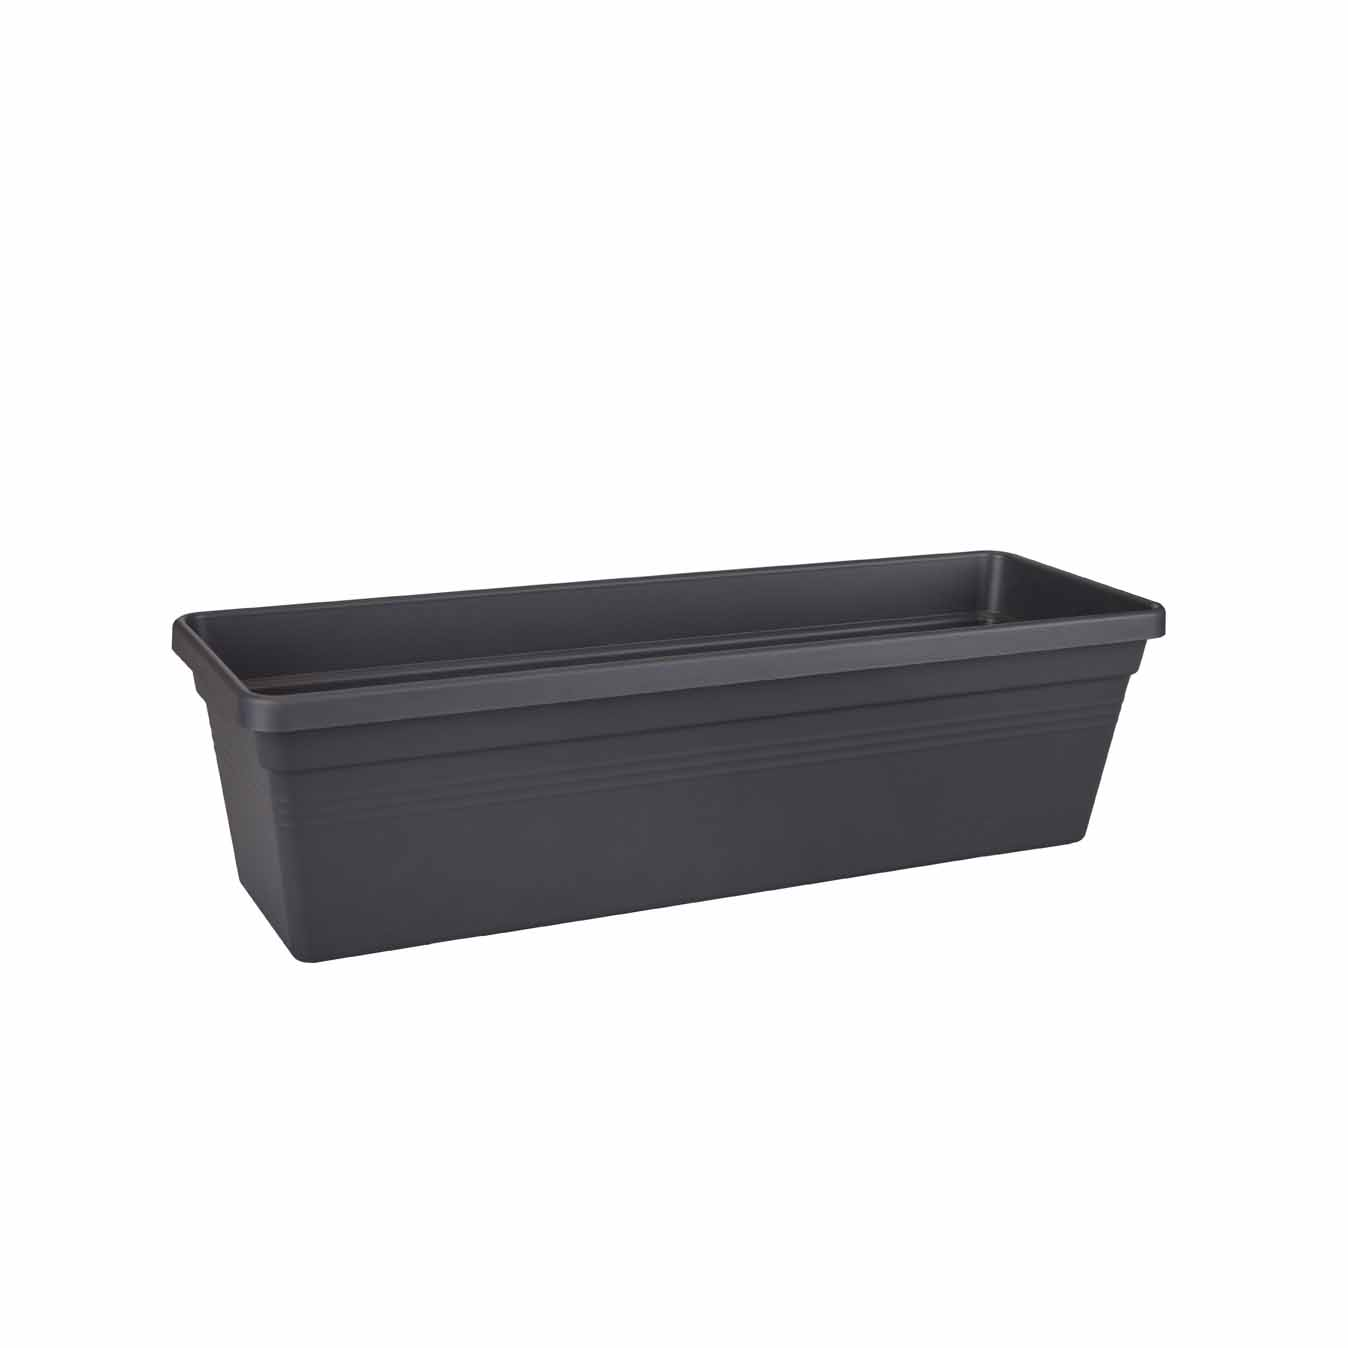 Elho Green Basic trough 30cm Living Black